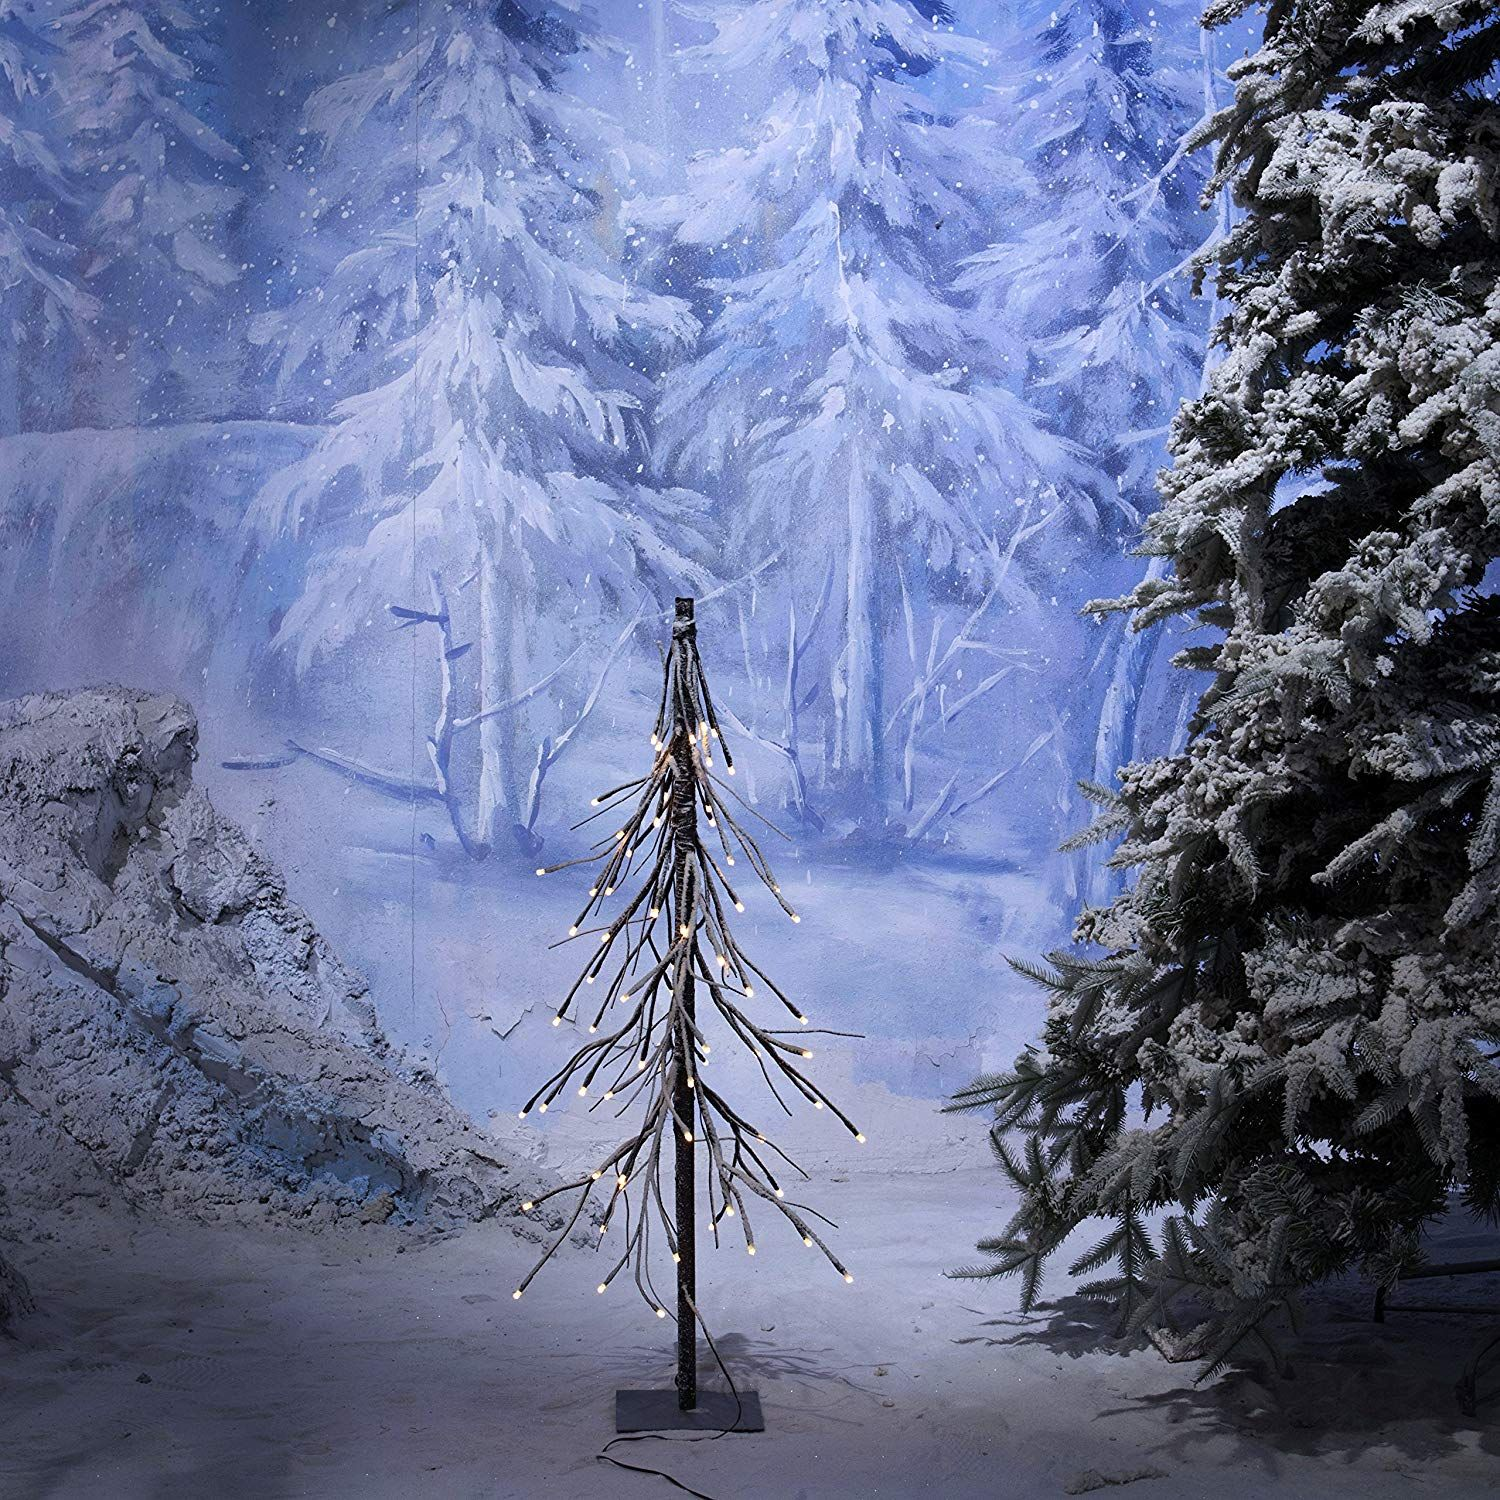 19.99+YUNLIGHTS 5ft Snow Dusted Tree Lights 75 LED Light